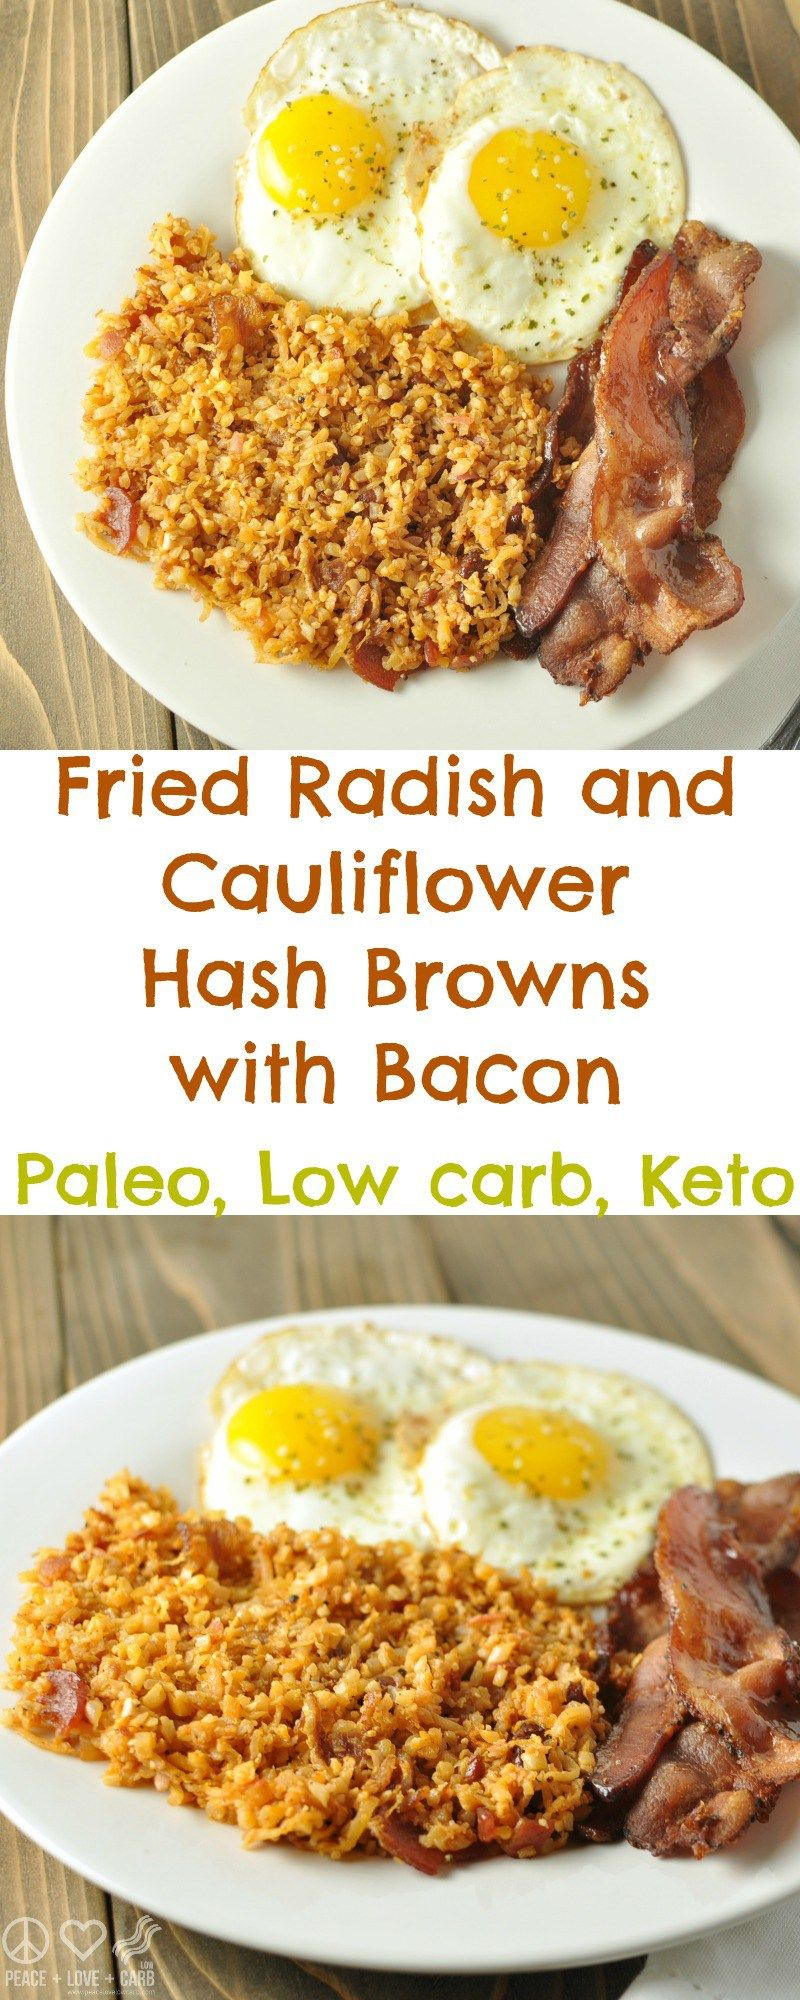 Fried Radish And Cauliflower Hash Browns With Bacon Paleo Low